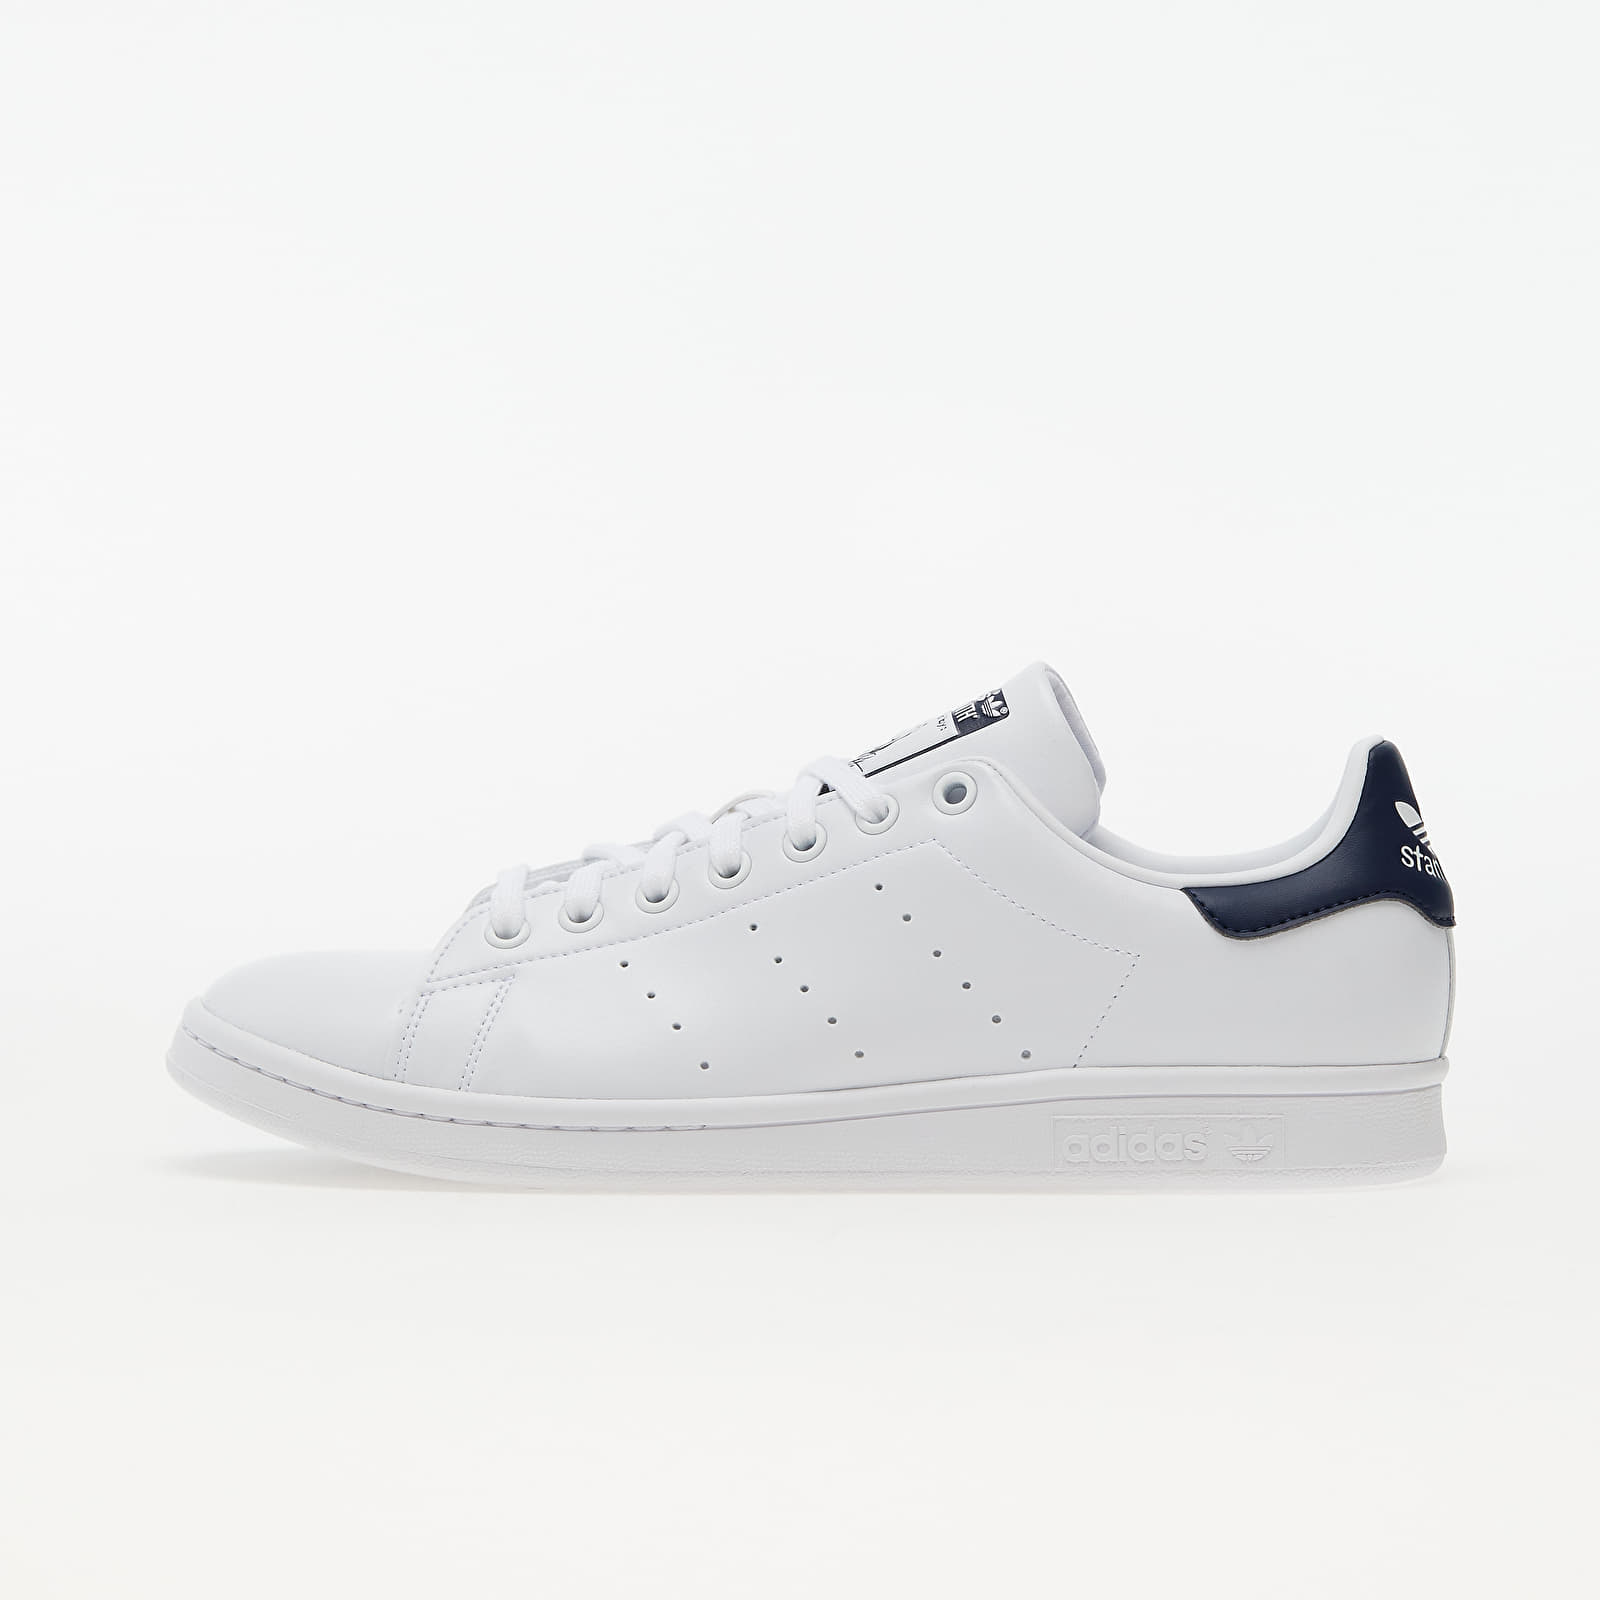 adidas Stan Smith Ftw White/ Ftw White/ Collegiate Navy EUR 44